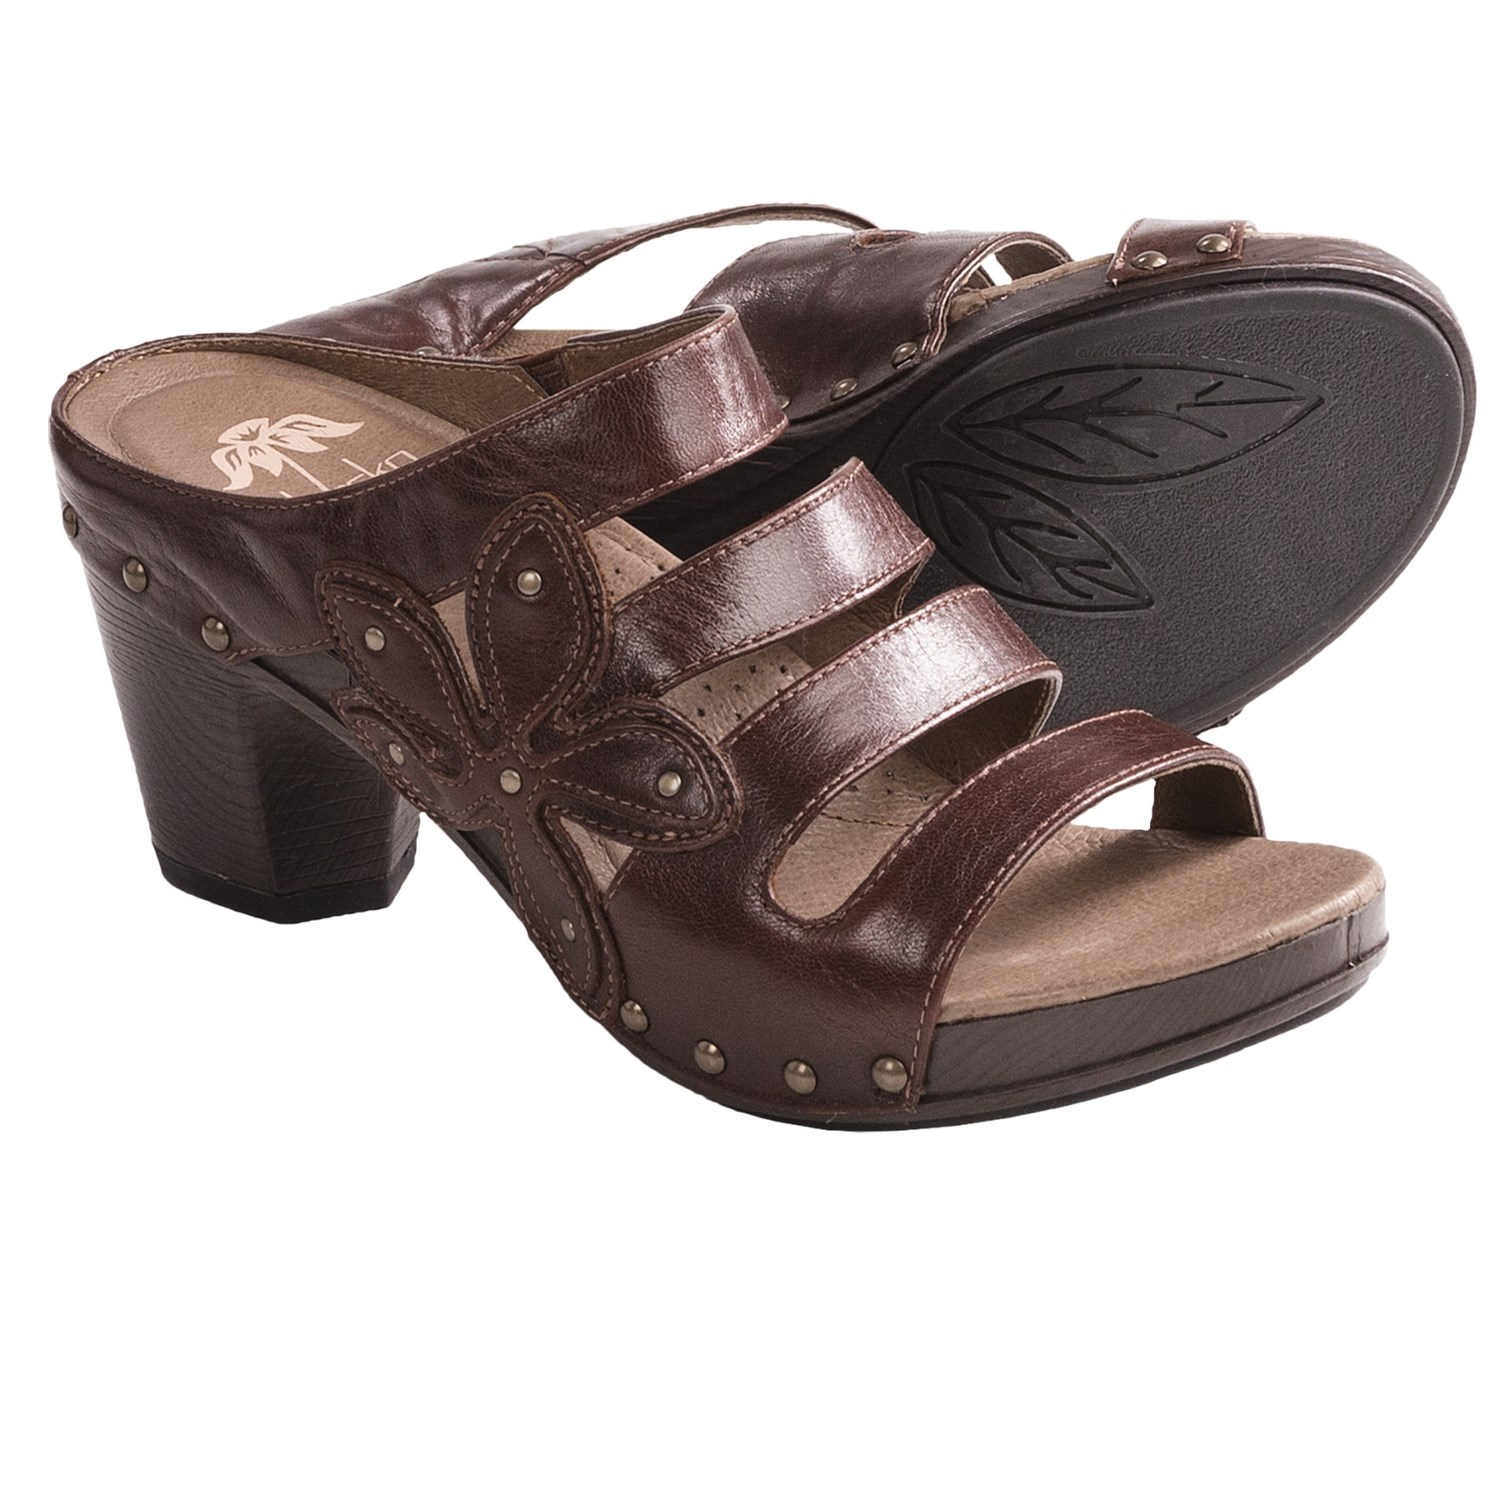 Dansko Summer Shoes